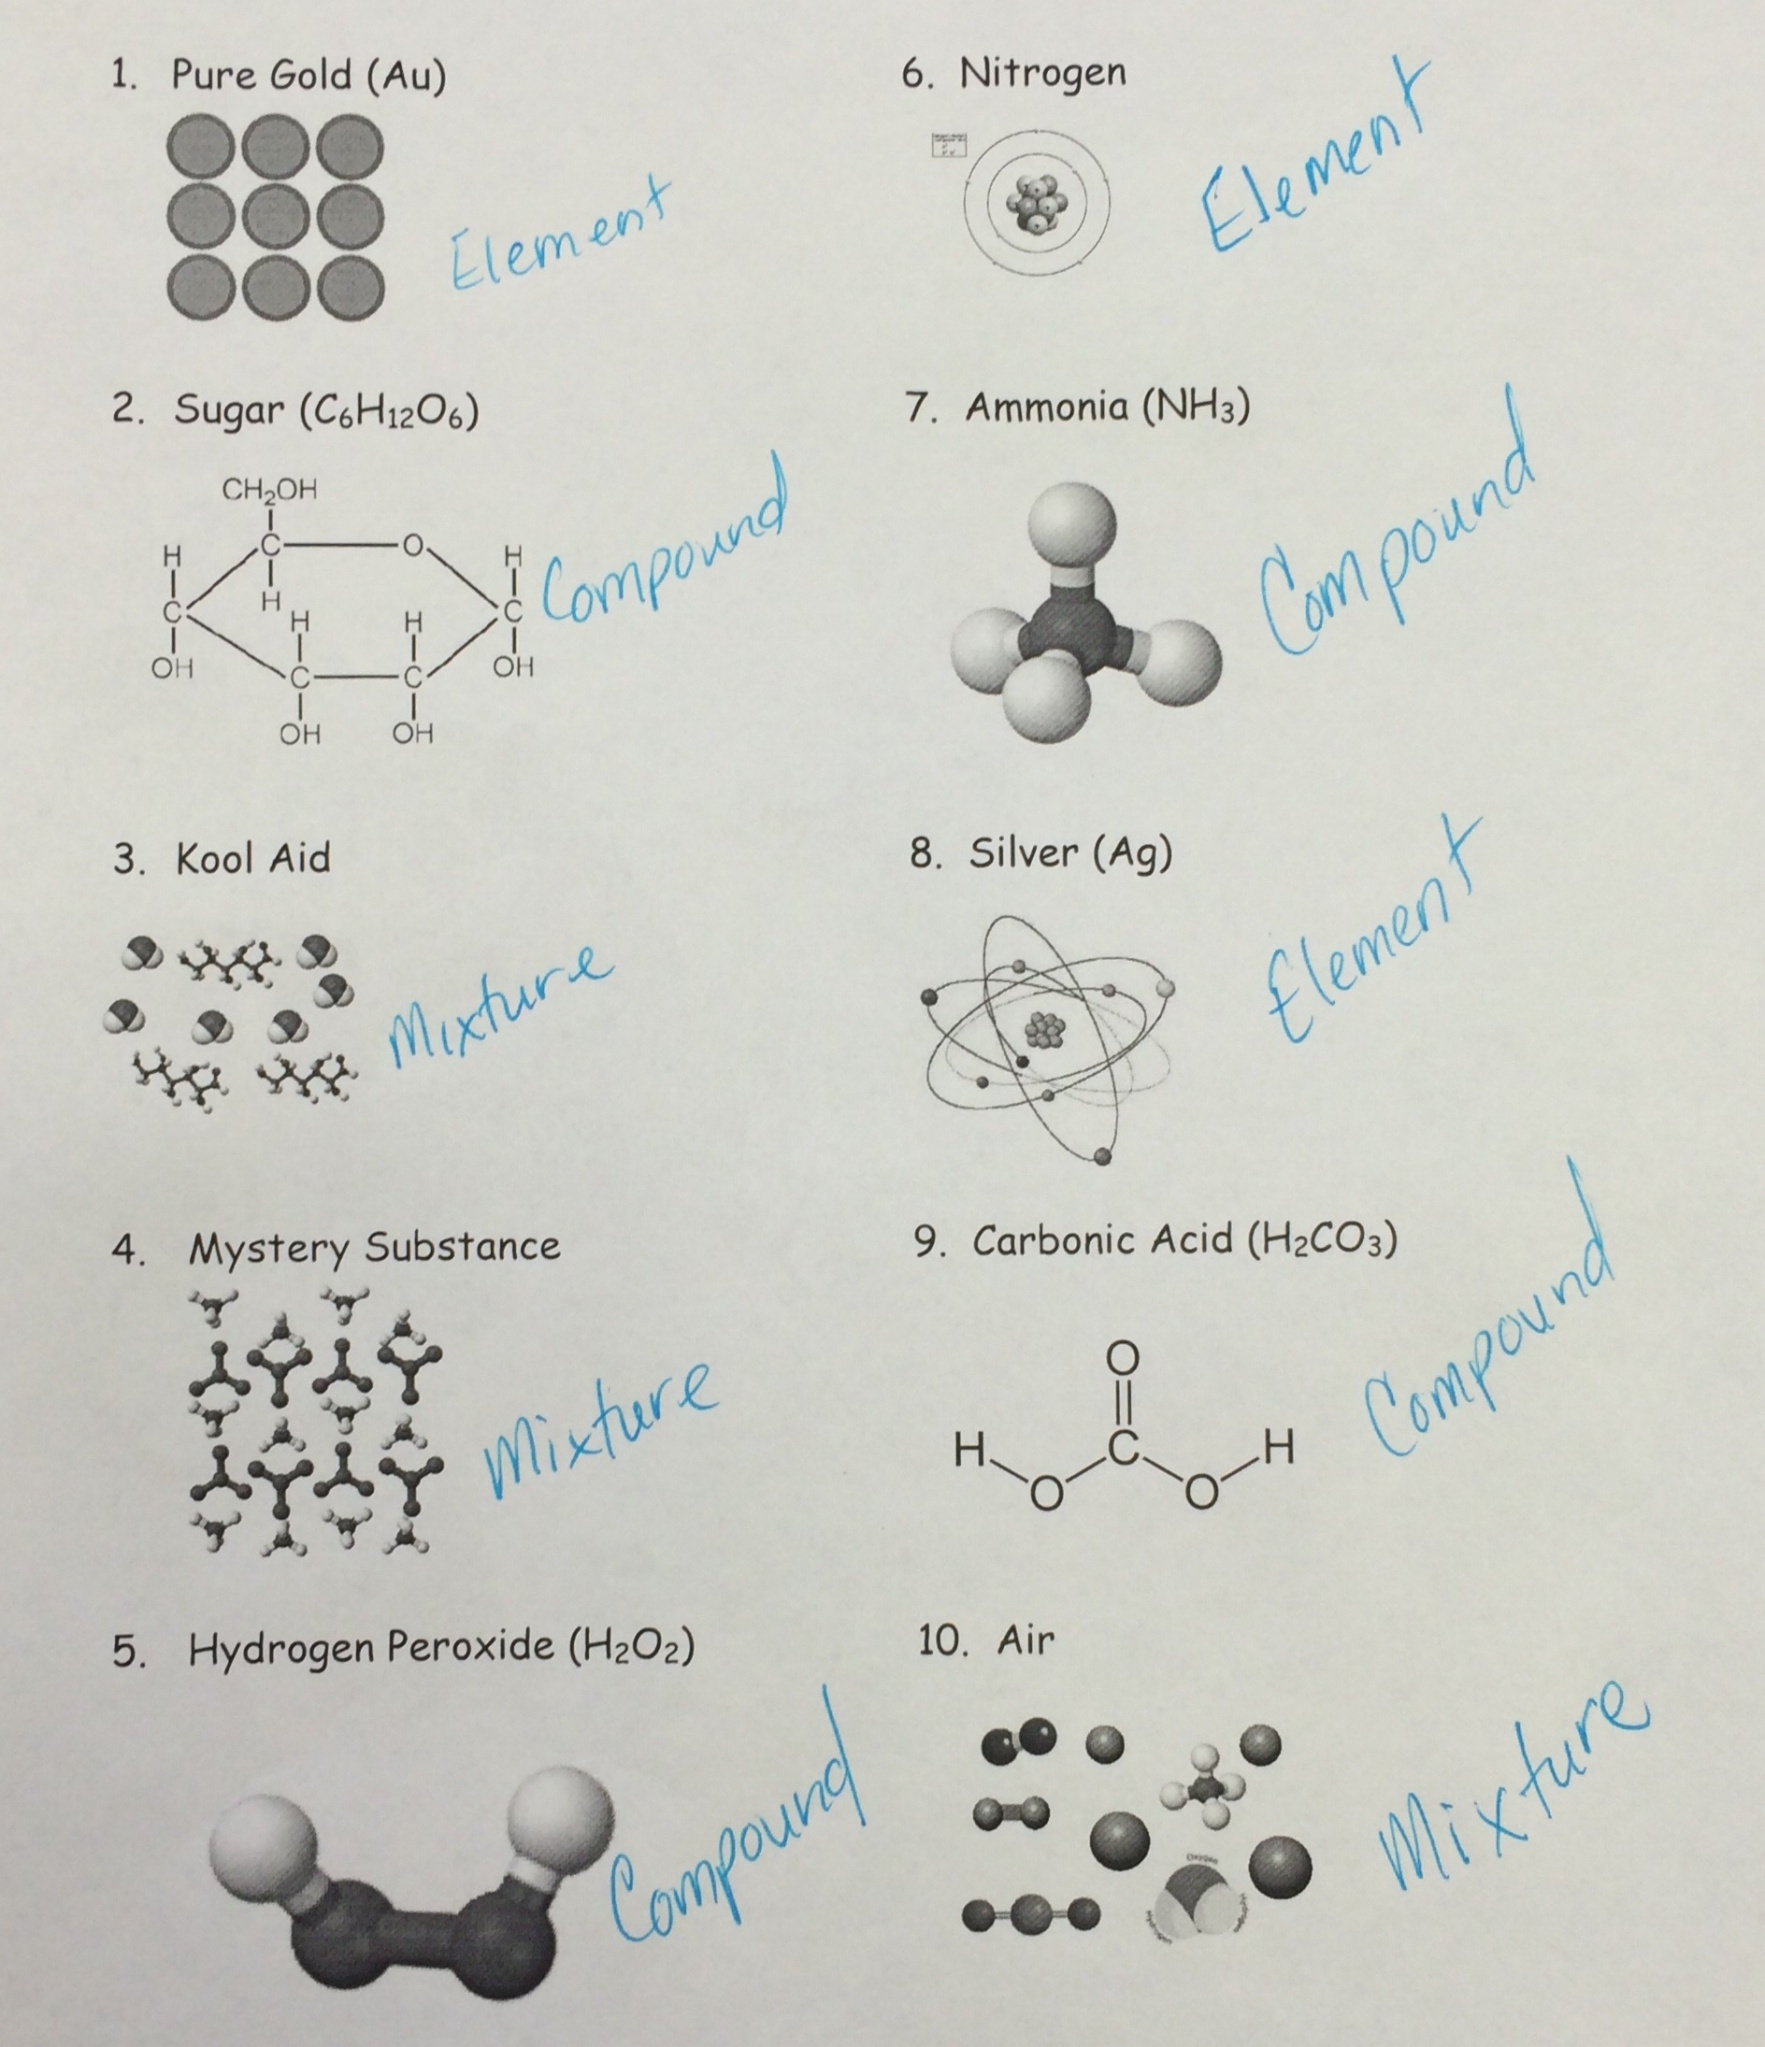 worksheet Element Compound Mixture Worksheet skill 3 true false answer key betterlesson if the matter is an element molecule compound or mixture based on structural patterns they observed when creating marshmallow molecules